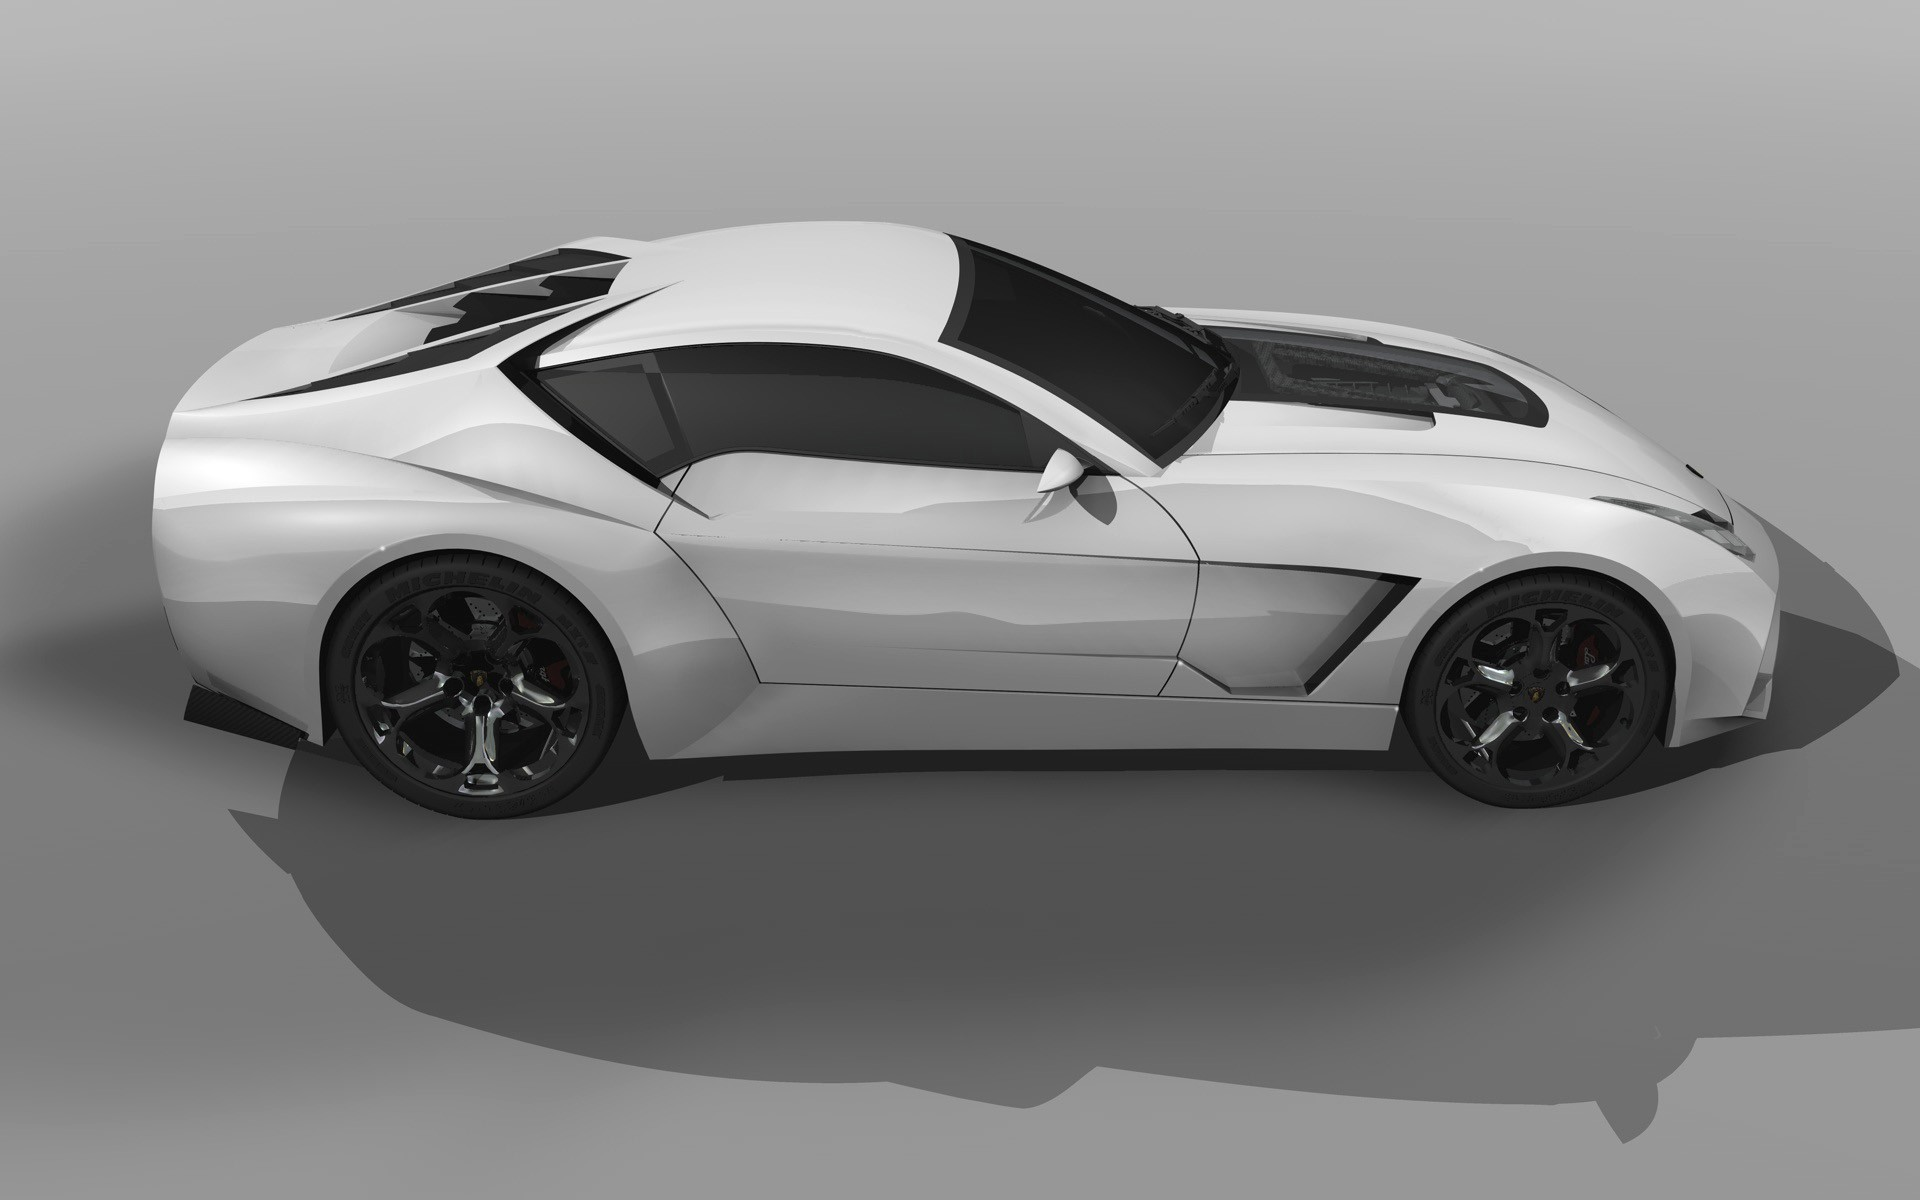 White Design Lamborghini Concept Art 2009 Toro Wallpaper